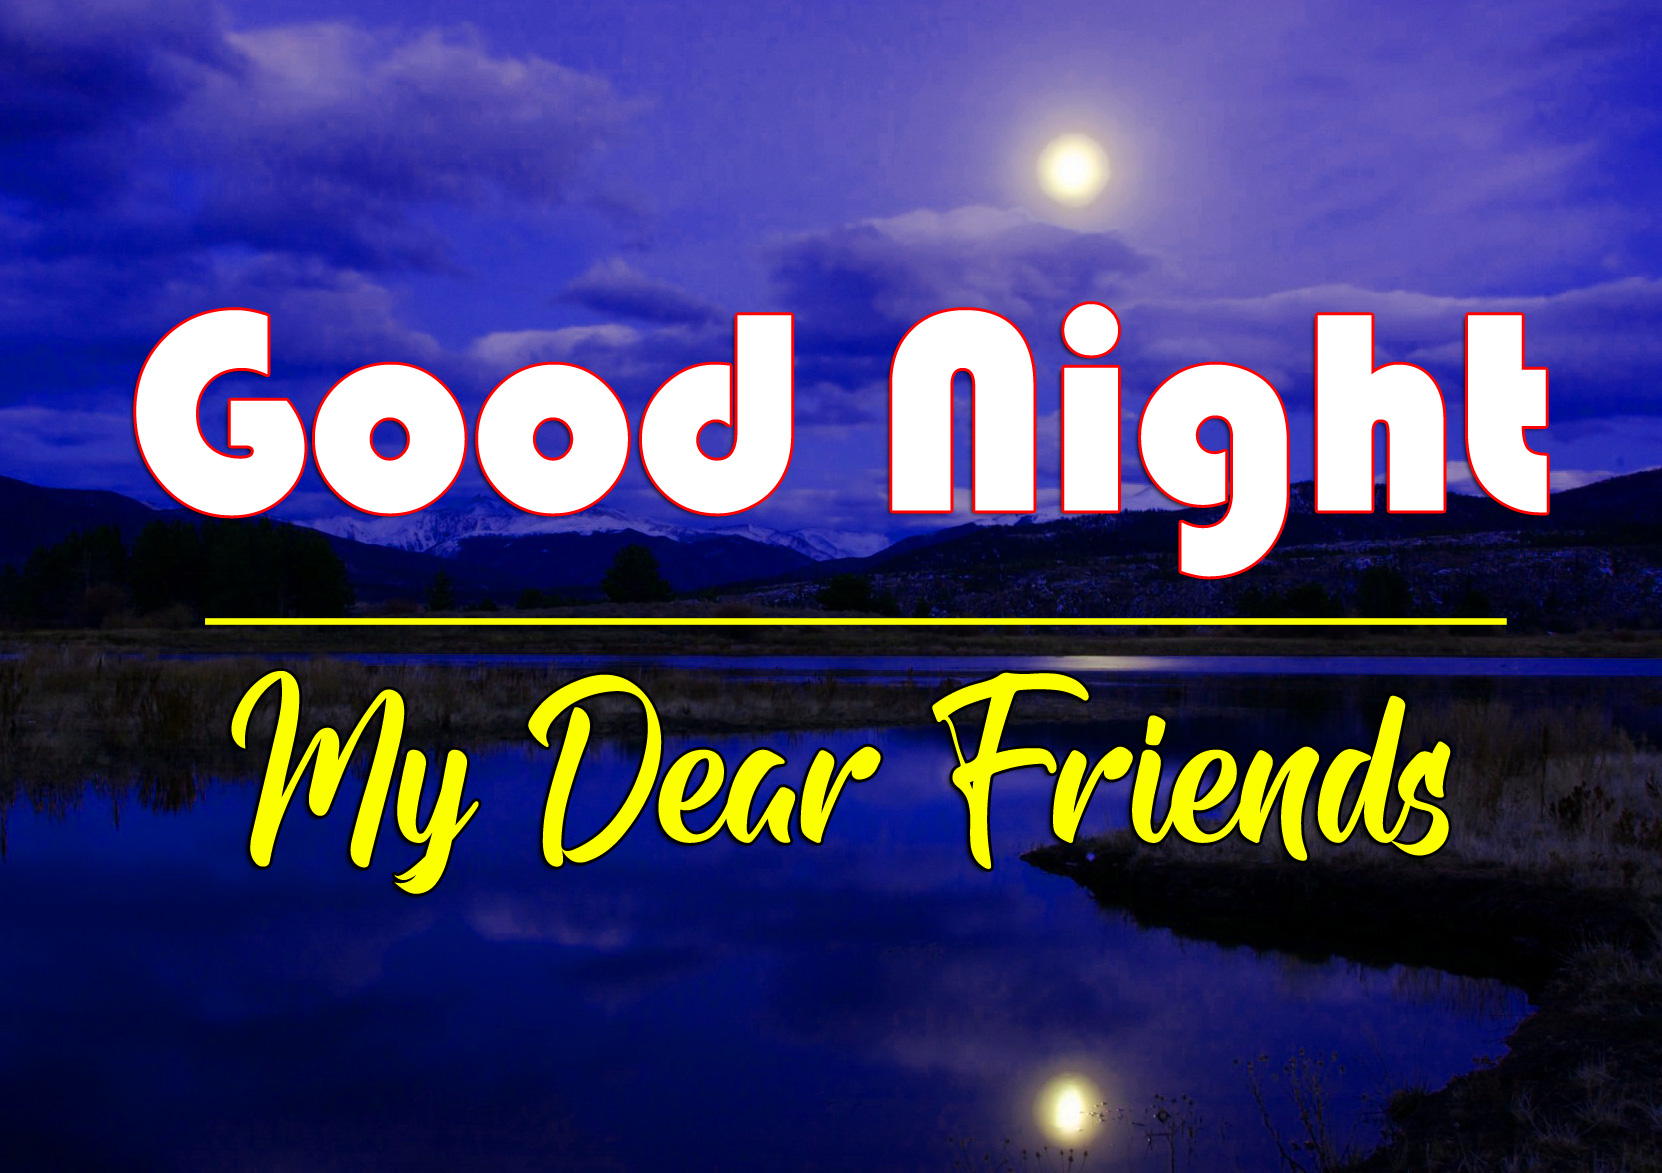 Latest Free 4k Good Night Images Pics Download 2